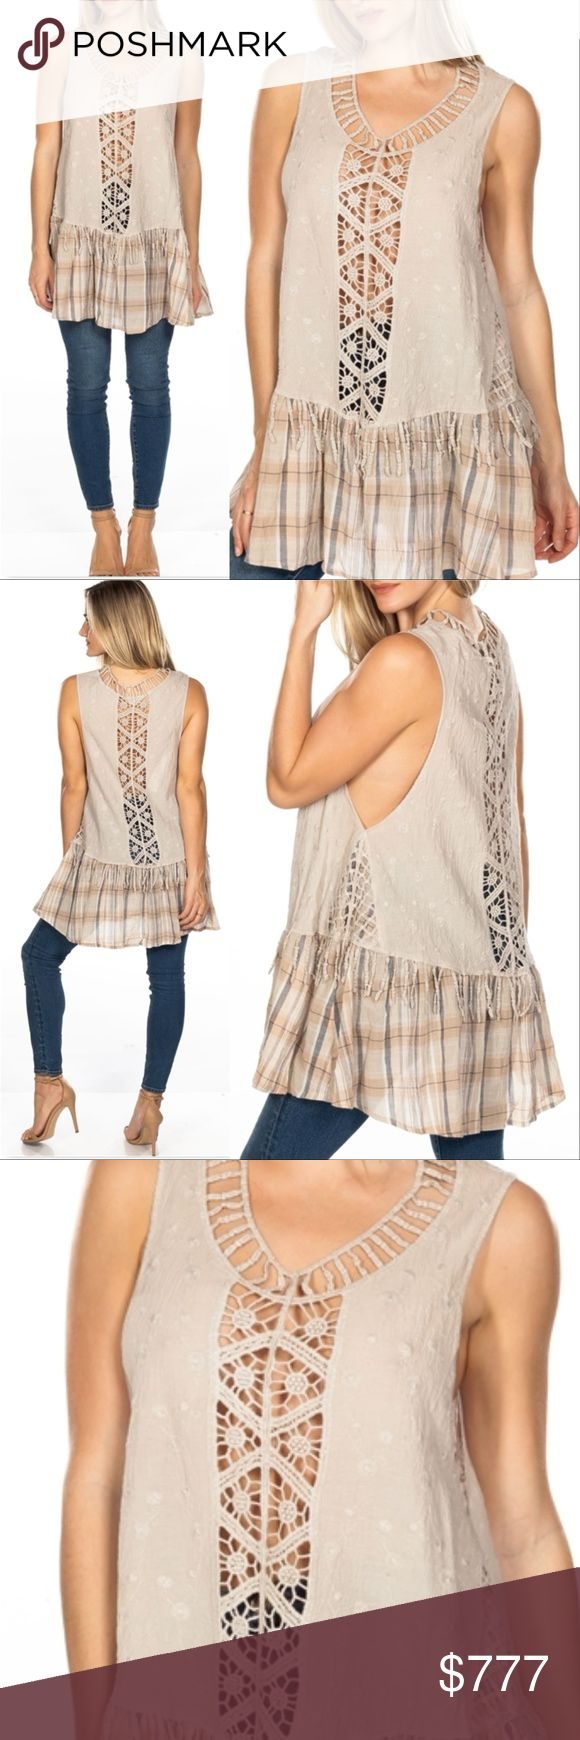 """'BOHO BEUATY' TUNIC CROCHET & PLAID TOP WE ARE AN ONLINE STORE, ALL ITEMS ARE BRAND NEW PRICING IS FIRM  GET THIS FABULOUS BOHO STYLE TUNIC TOP FEATURING fabulous see thru crochet details, fringe and plaid hemline and comfortable tunic fit! pair with jeans and heels or denim shorts with sandals, you could even wear it over your bikini to the beach!  MATERIAL: COTTON Model is 5'7"""" and wearing a Small (Waist 25"""", Bust 32D"""", Hips 36)  *Bohemian hippy 70's coachella tunics comfortable cruise…"""